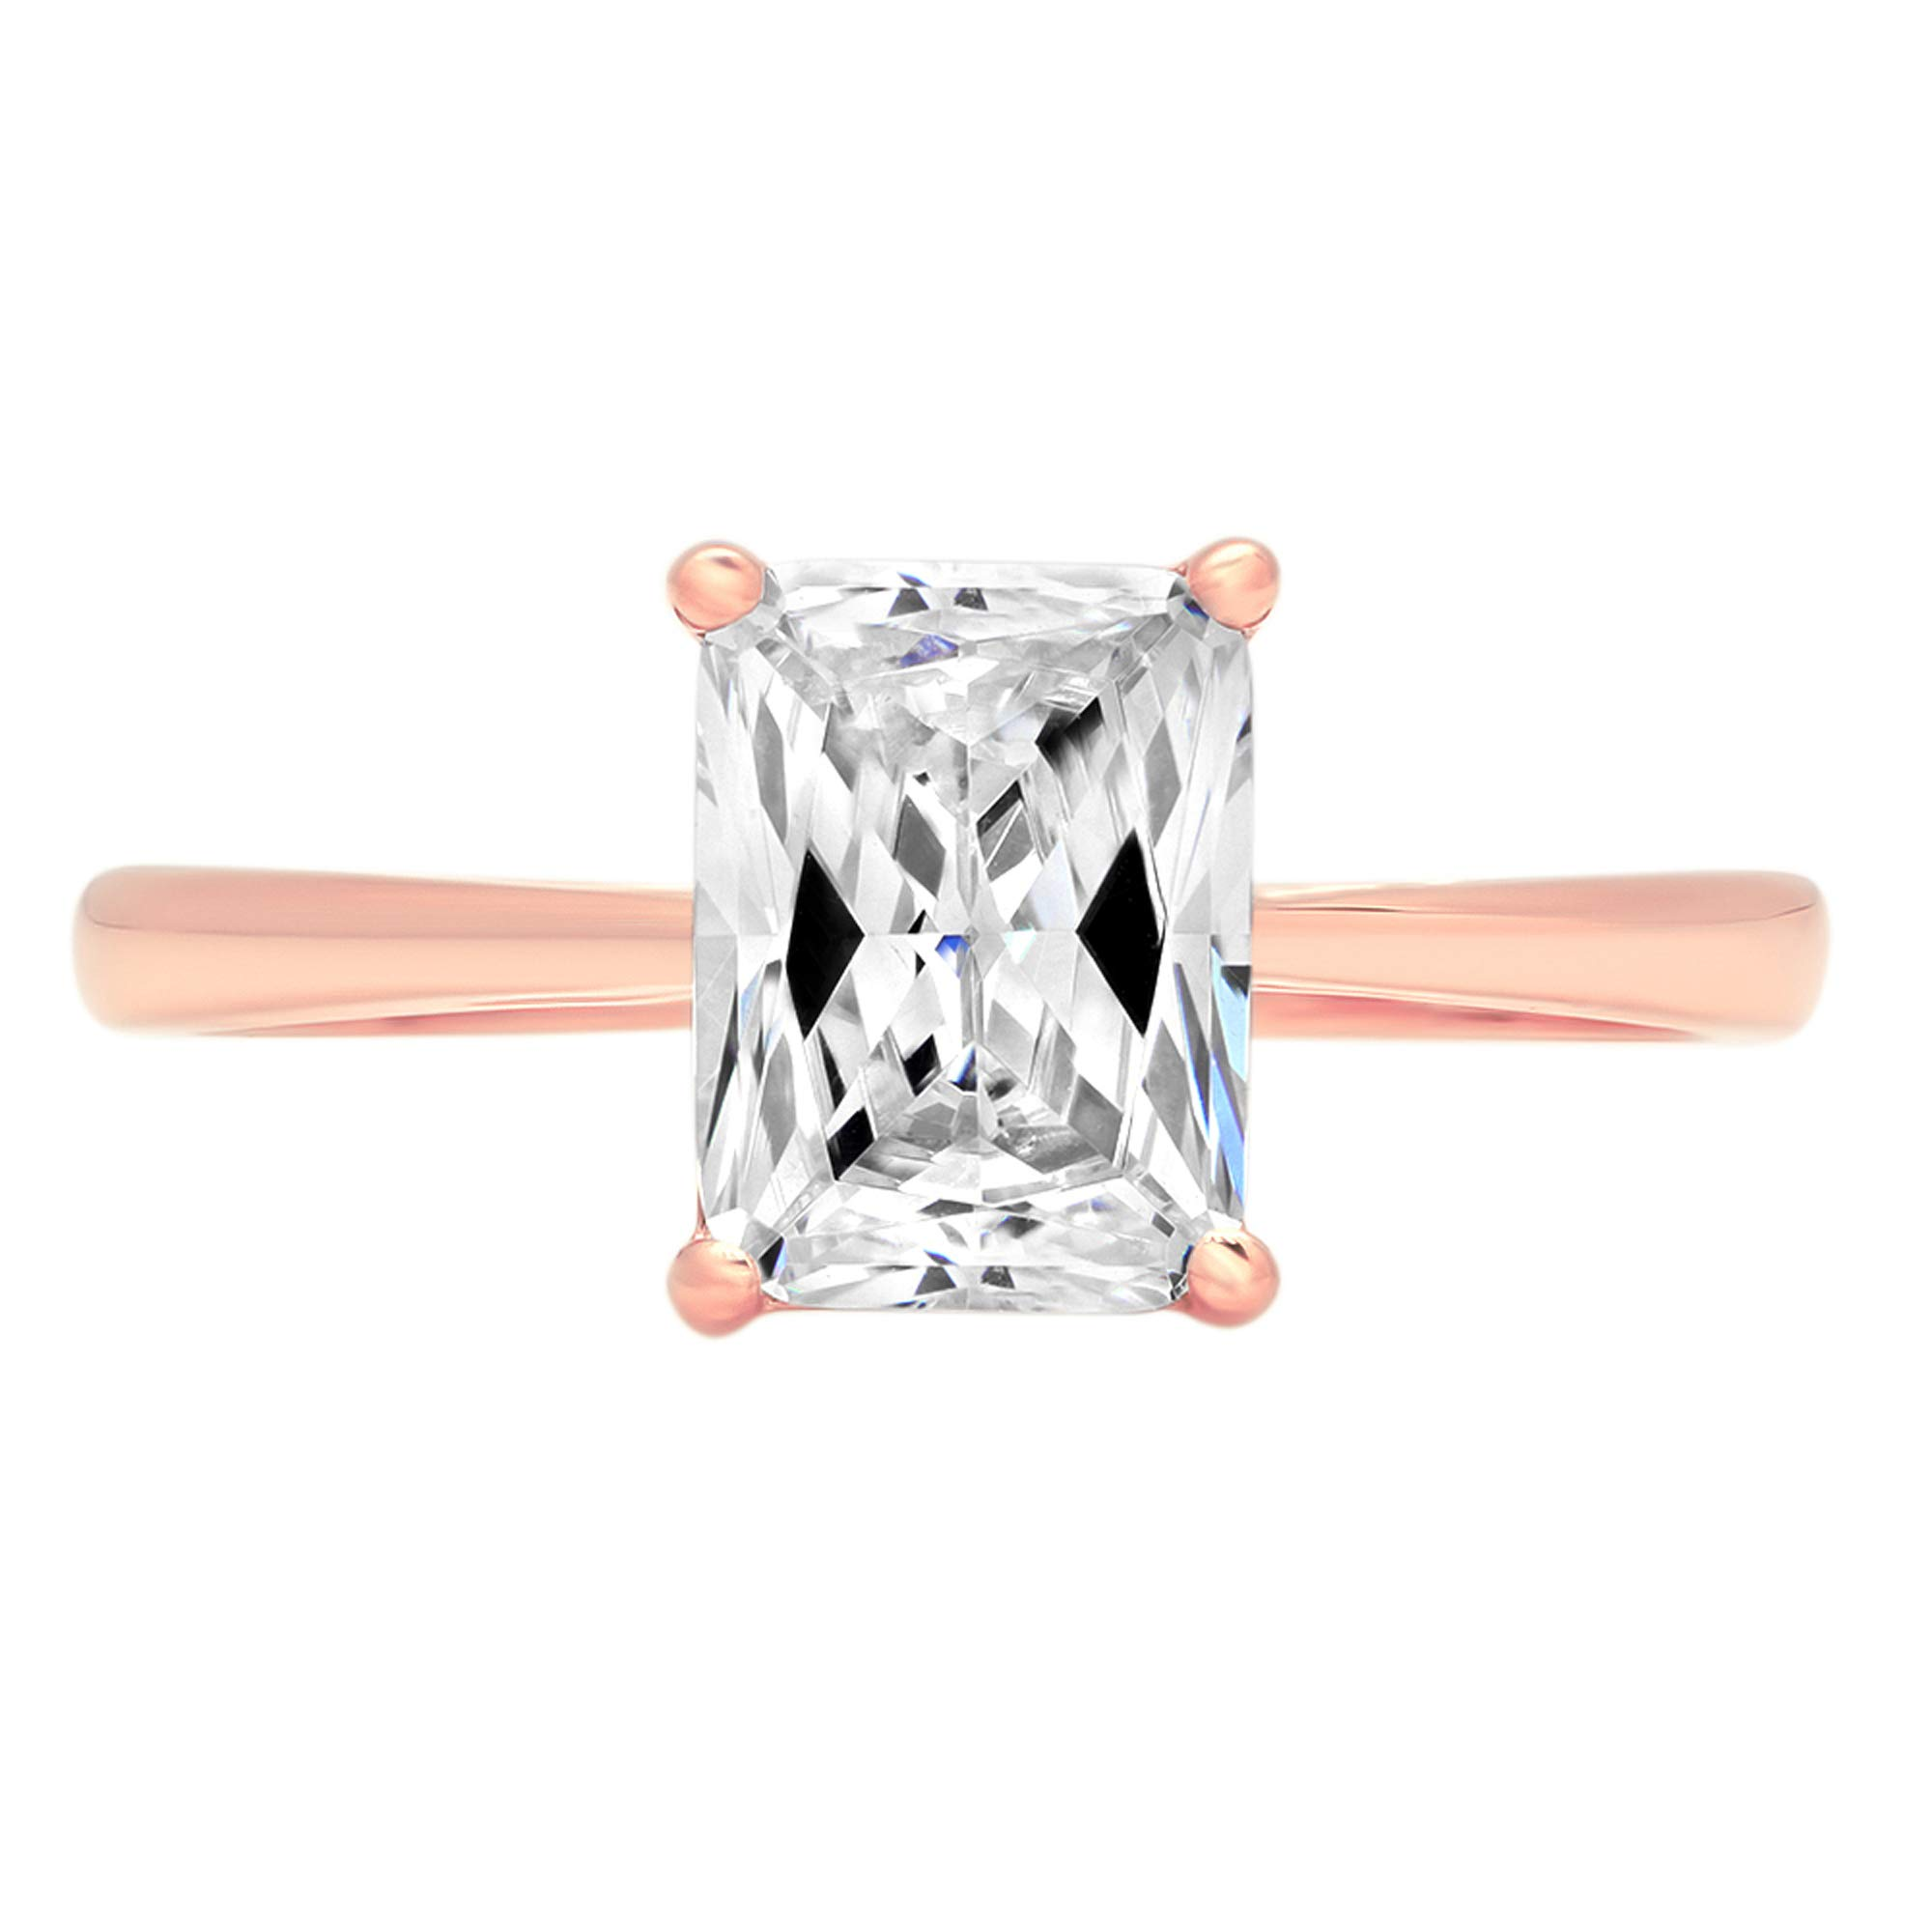 1.95ct Brilliant Emerald Cut Solitaire Highest Quality Lab Created White Sapphire Ideal VVS1 D 4-Prong Classic Designer Statement Ring Solid Real 14k Rose Gold for Women